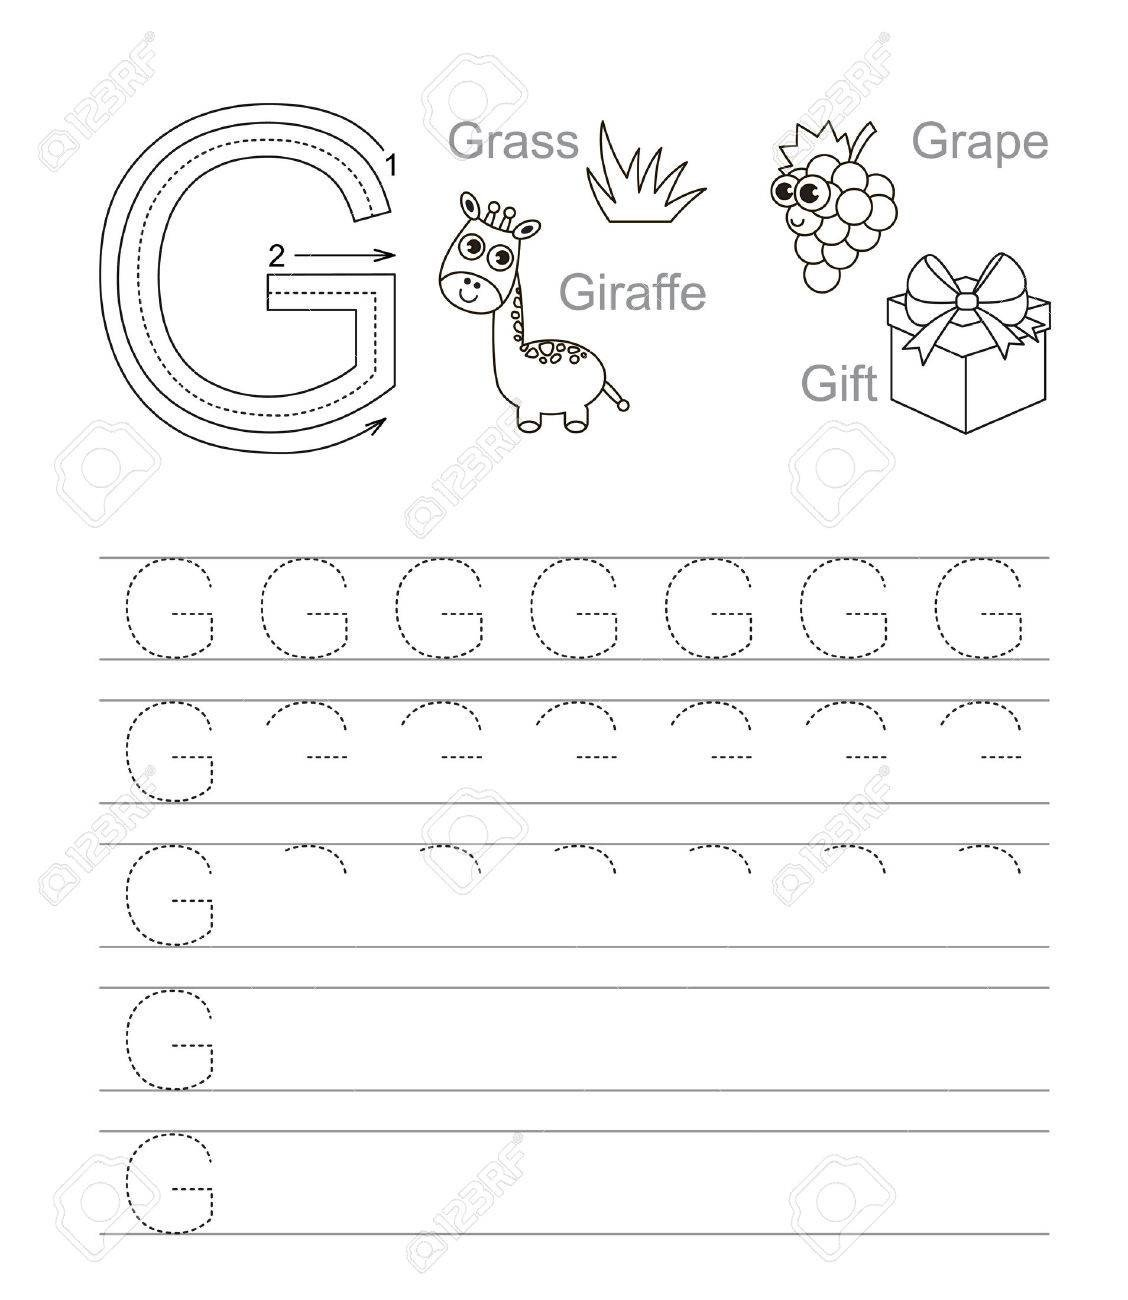 Letter G Tracing Worksheets Preschool Vector Exercise Illustrated Alphabet Learn Handwriting Tracing